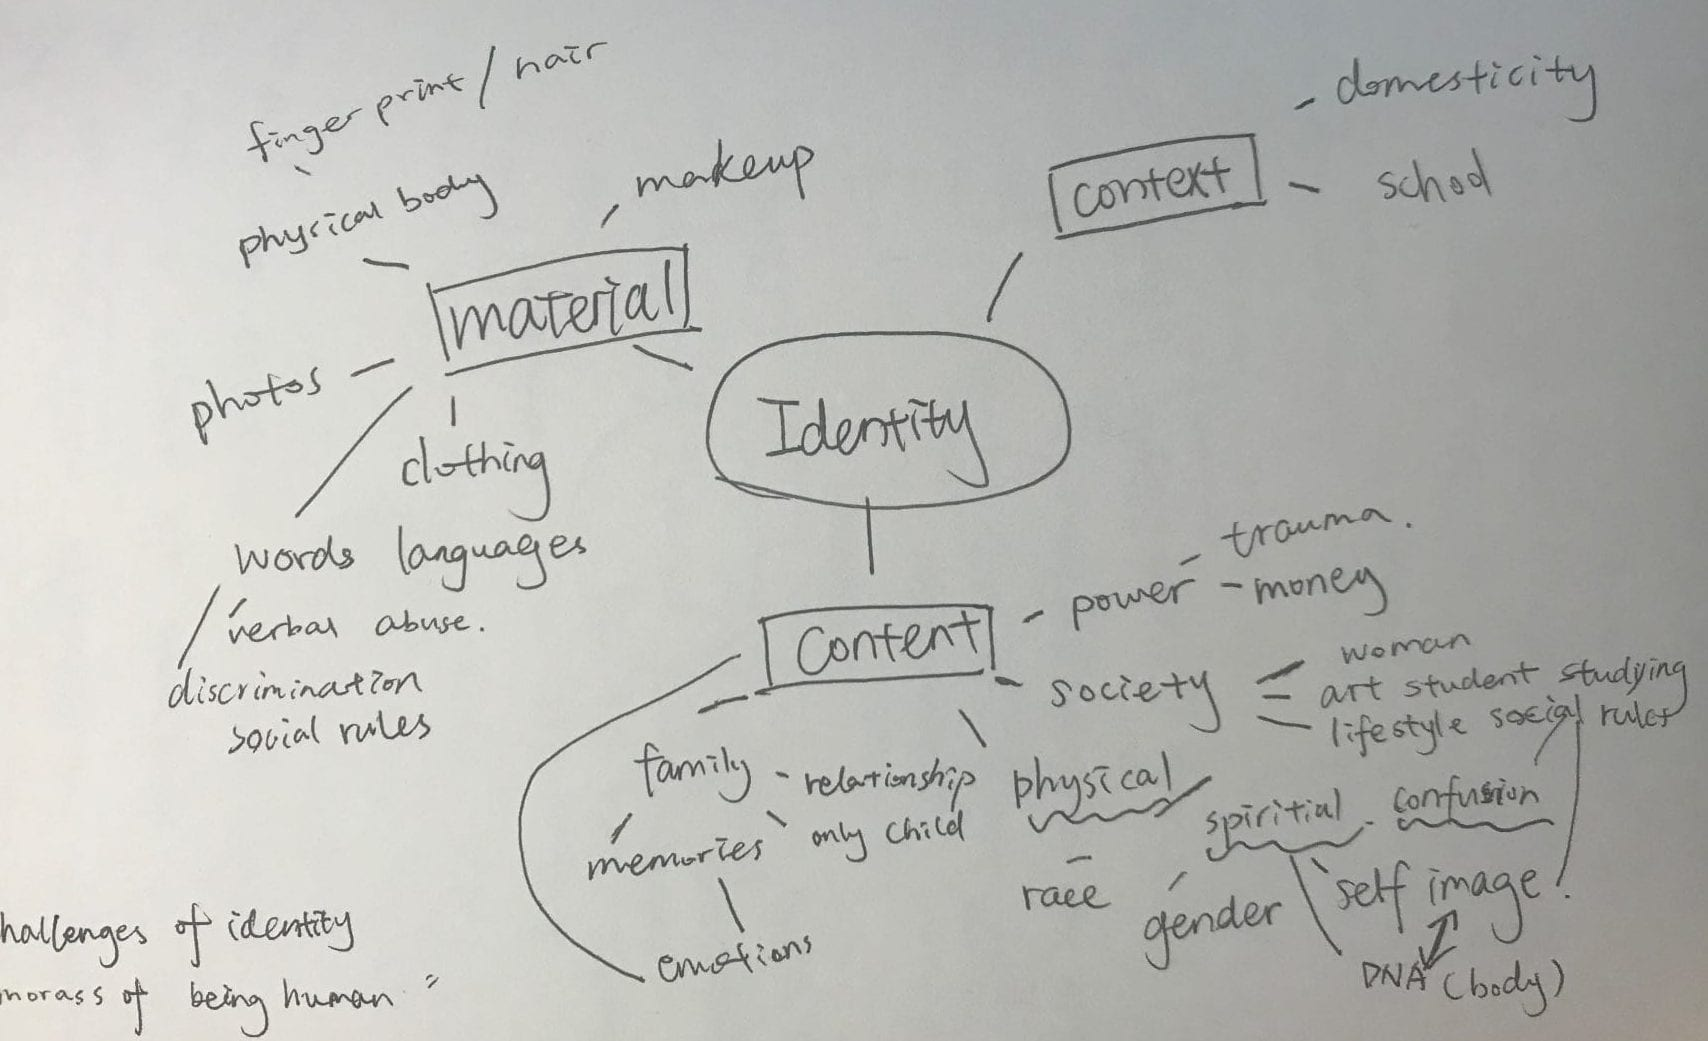 20 Qs for Studio and Seminar + Mind Map